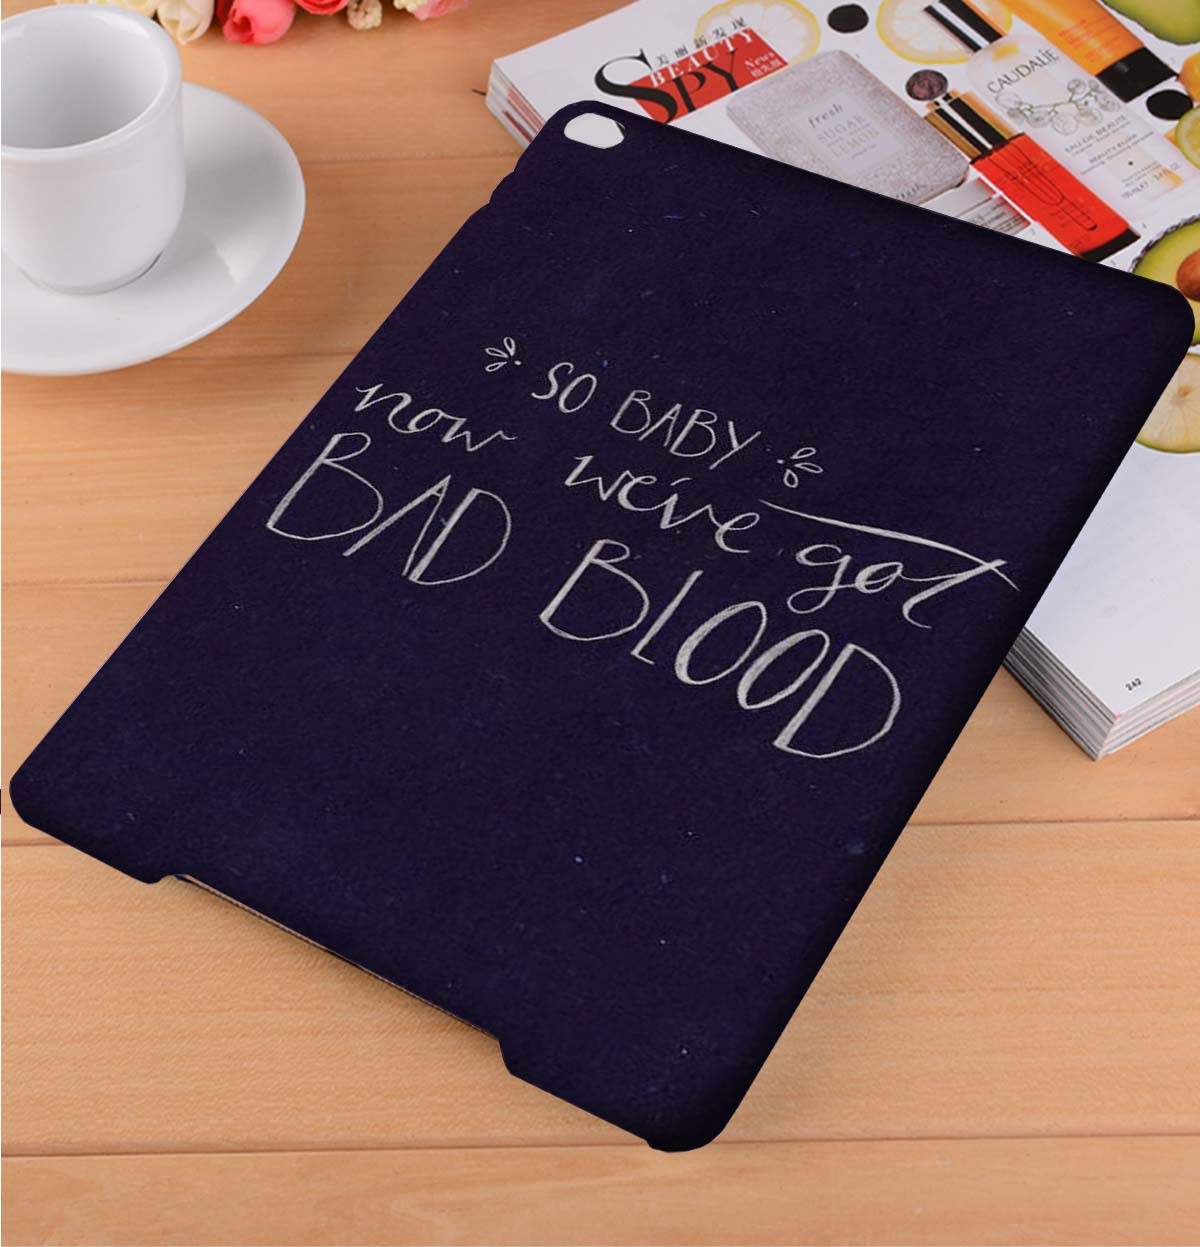 Bad Blood Quotes Taylor Swift Taylor Swift Bad Blood Quotes Ipad Samsung Galaxy Tab Case